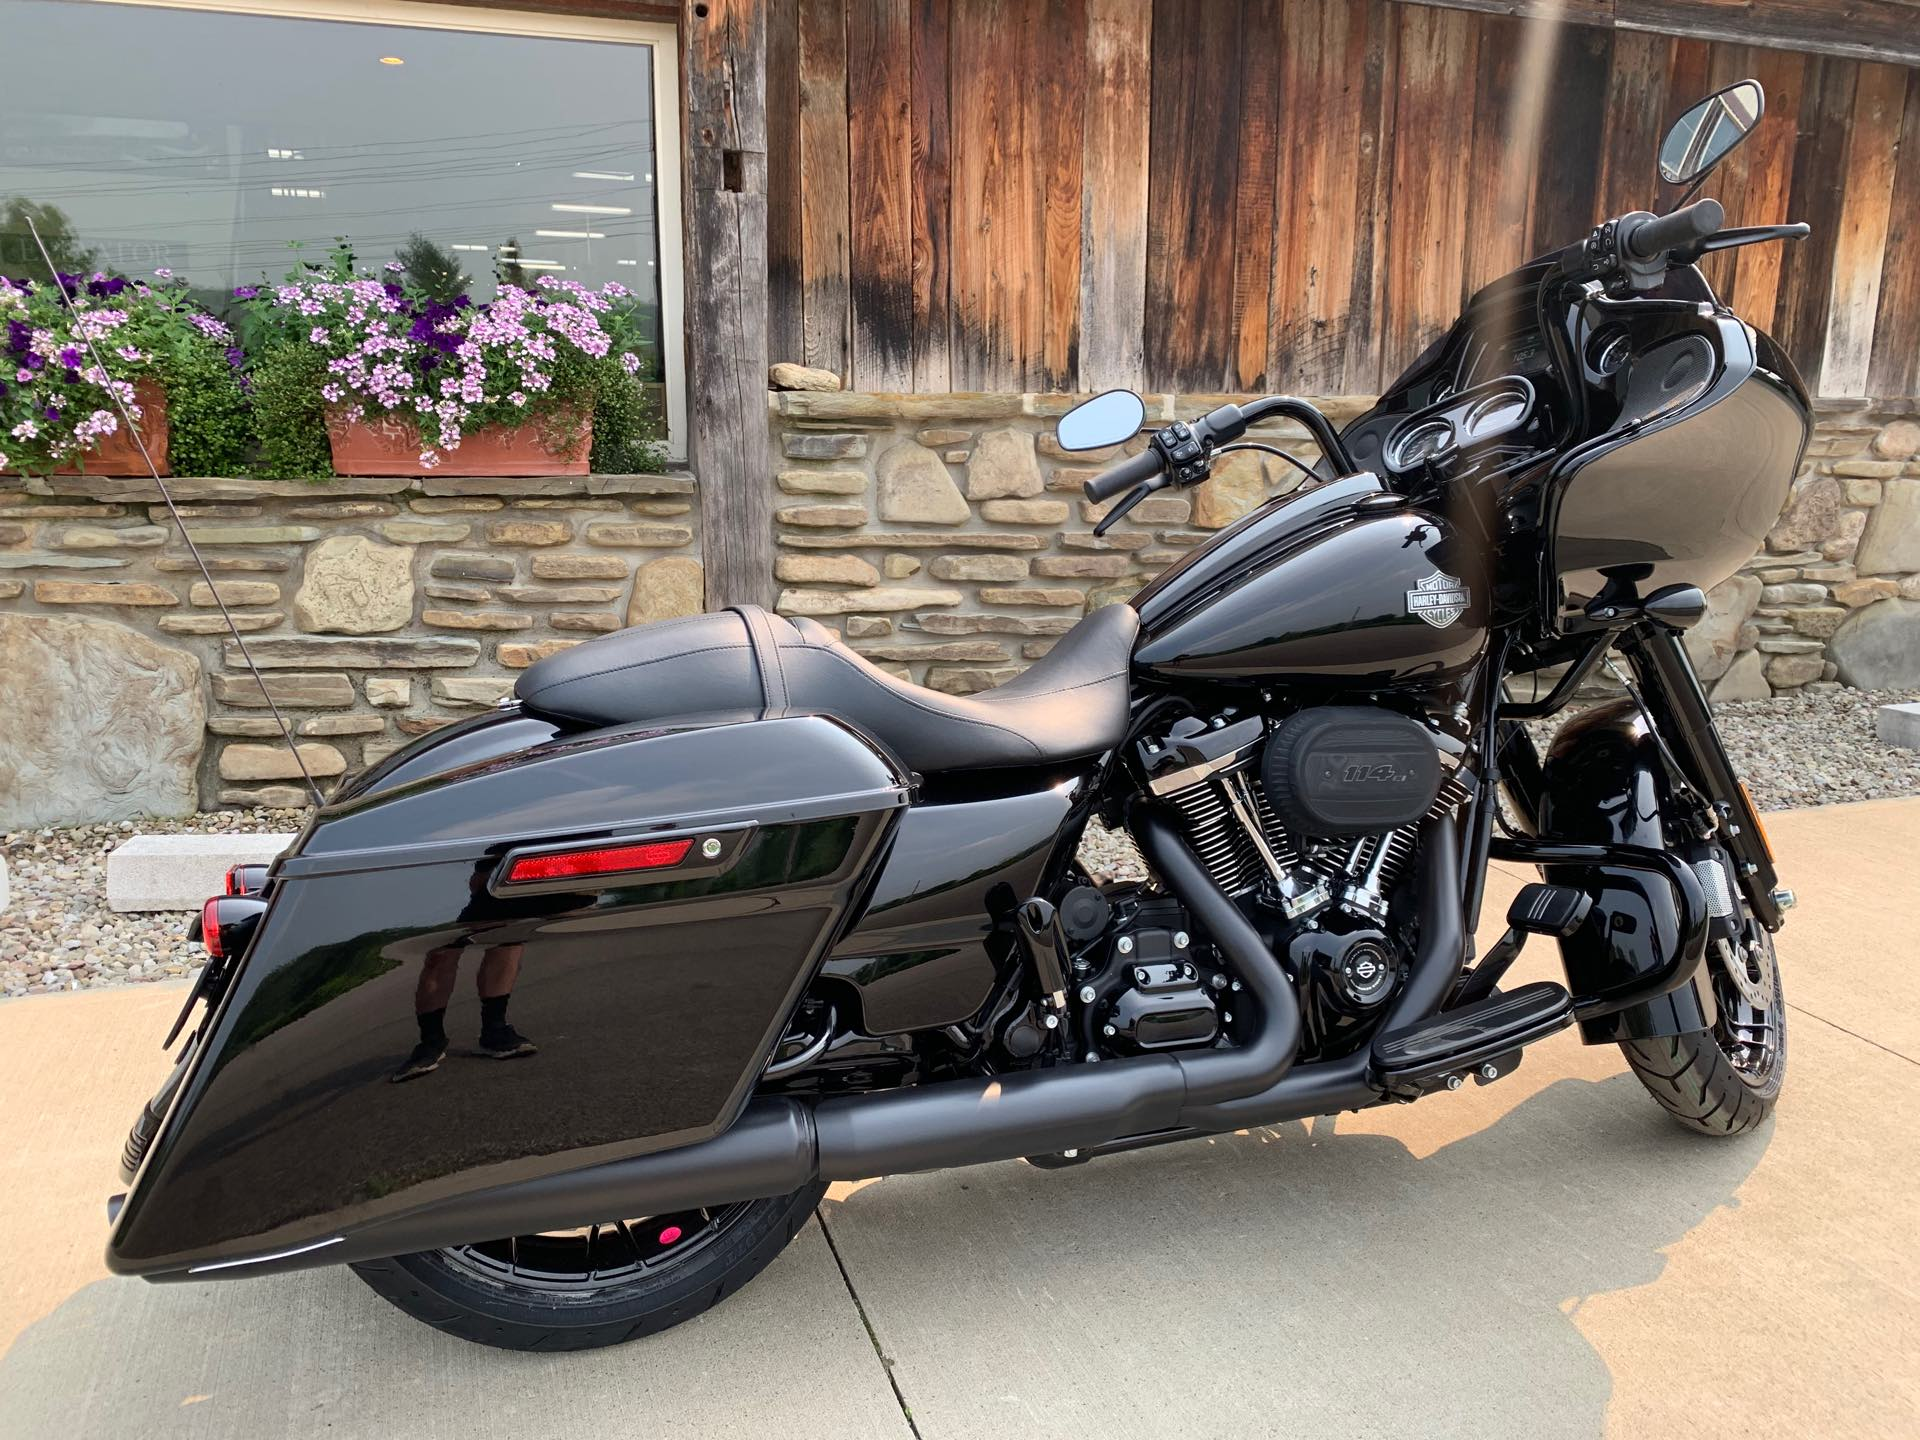 2021 Harley-Davidson Touring Road Glide Special at Arkport Cycles